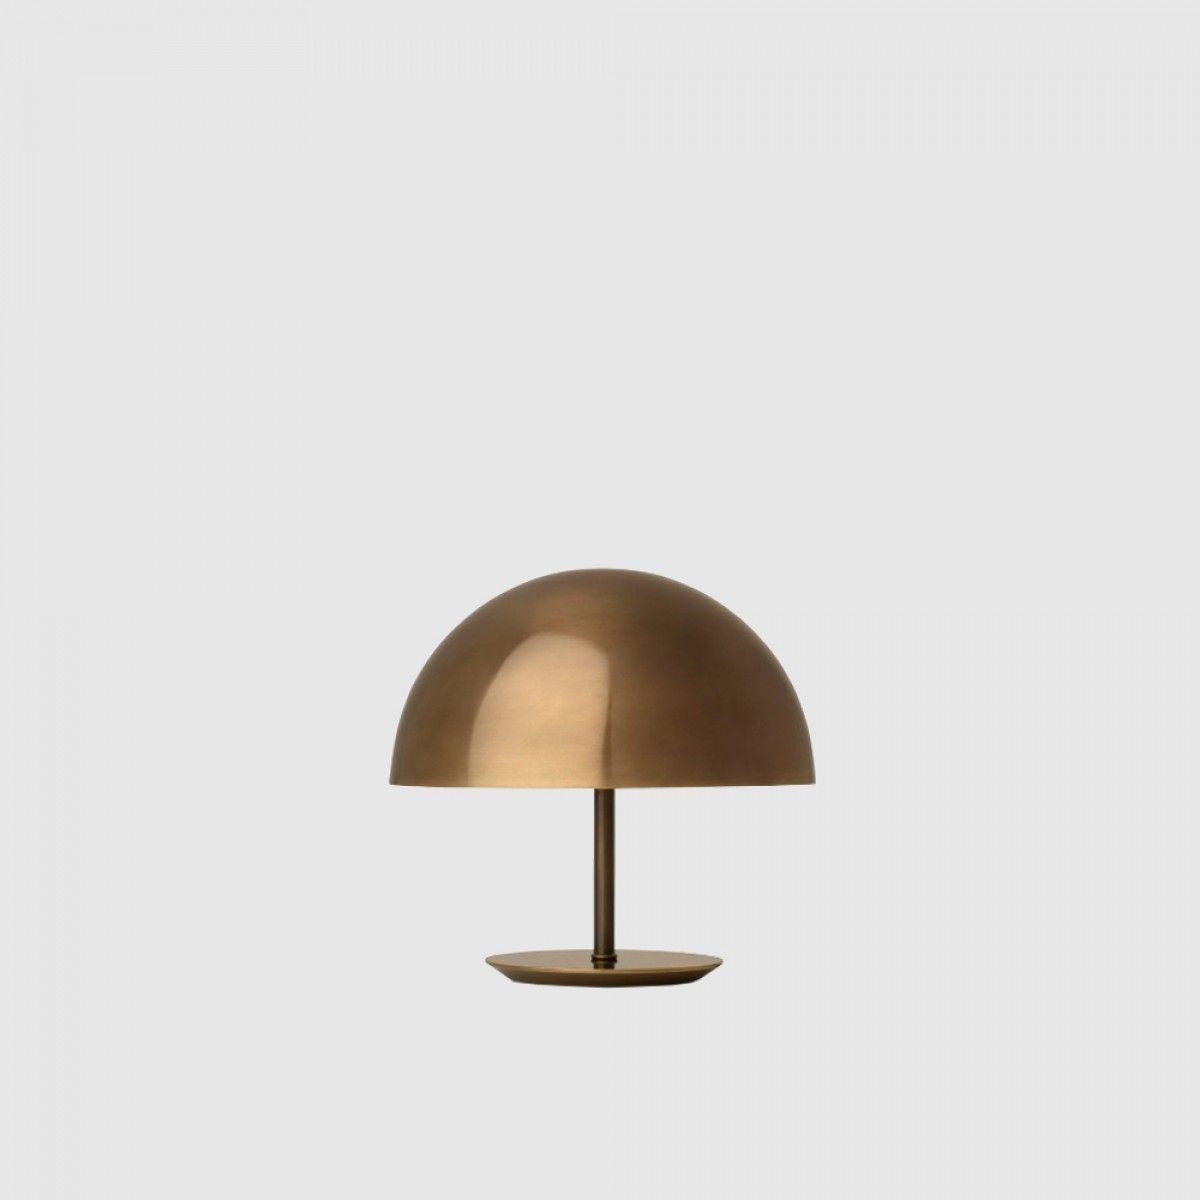 Dome table lamp small brass designer tom bracher for mater dome table lamp small brass designer tom bracher for mater aloadofball Choice Image